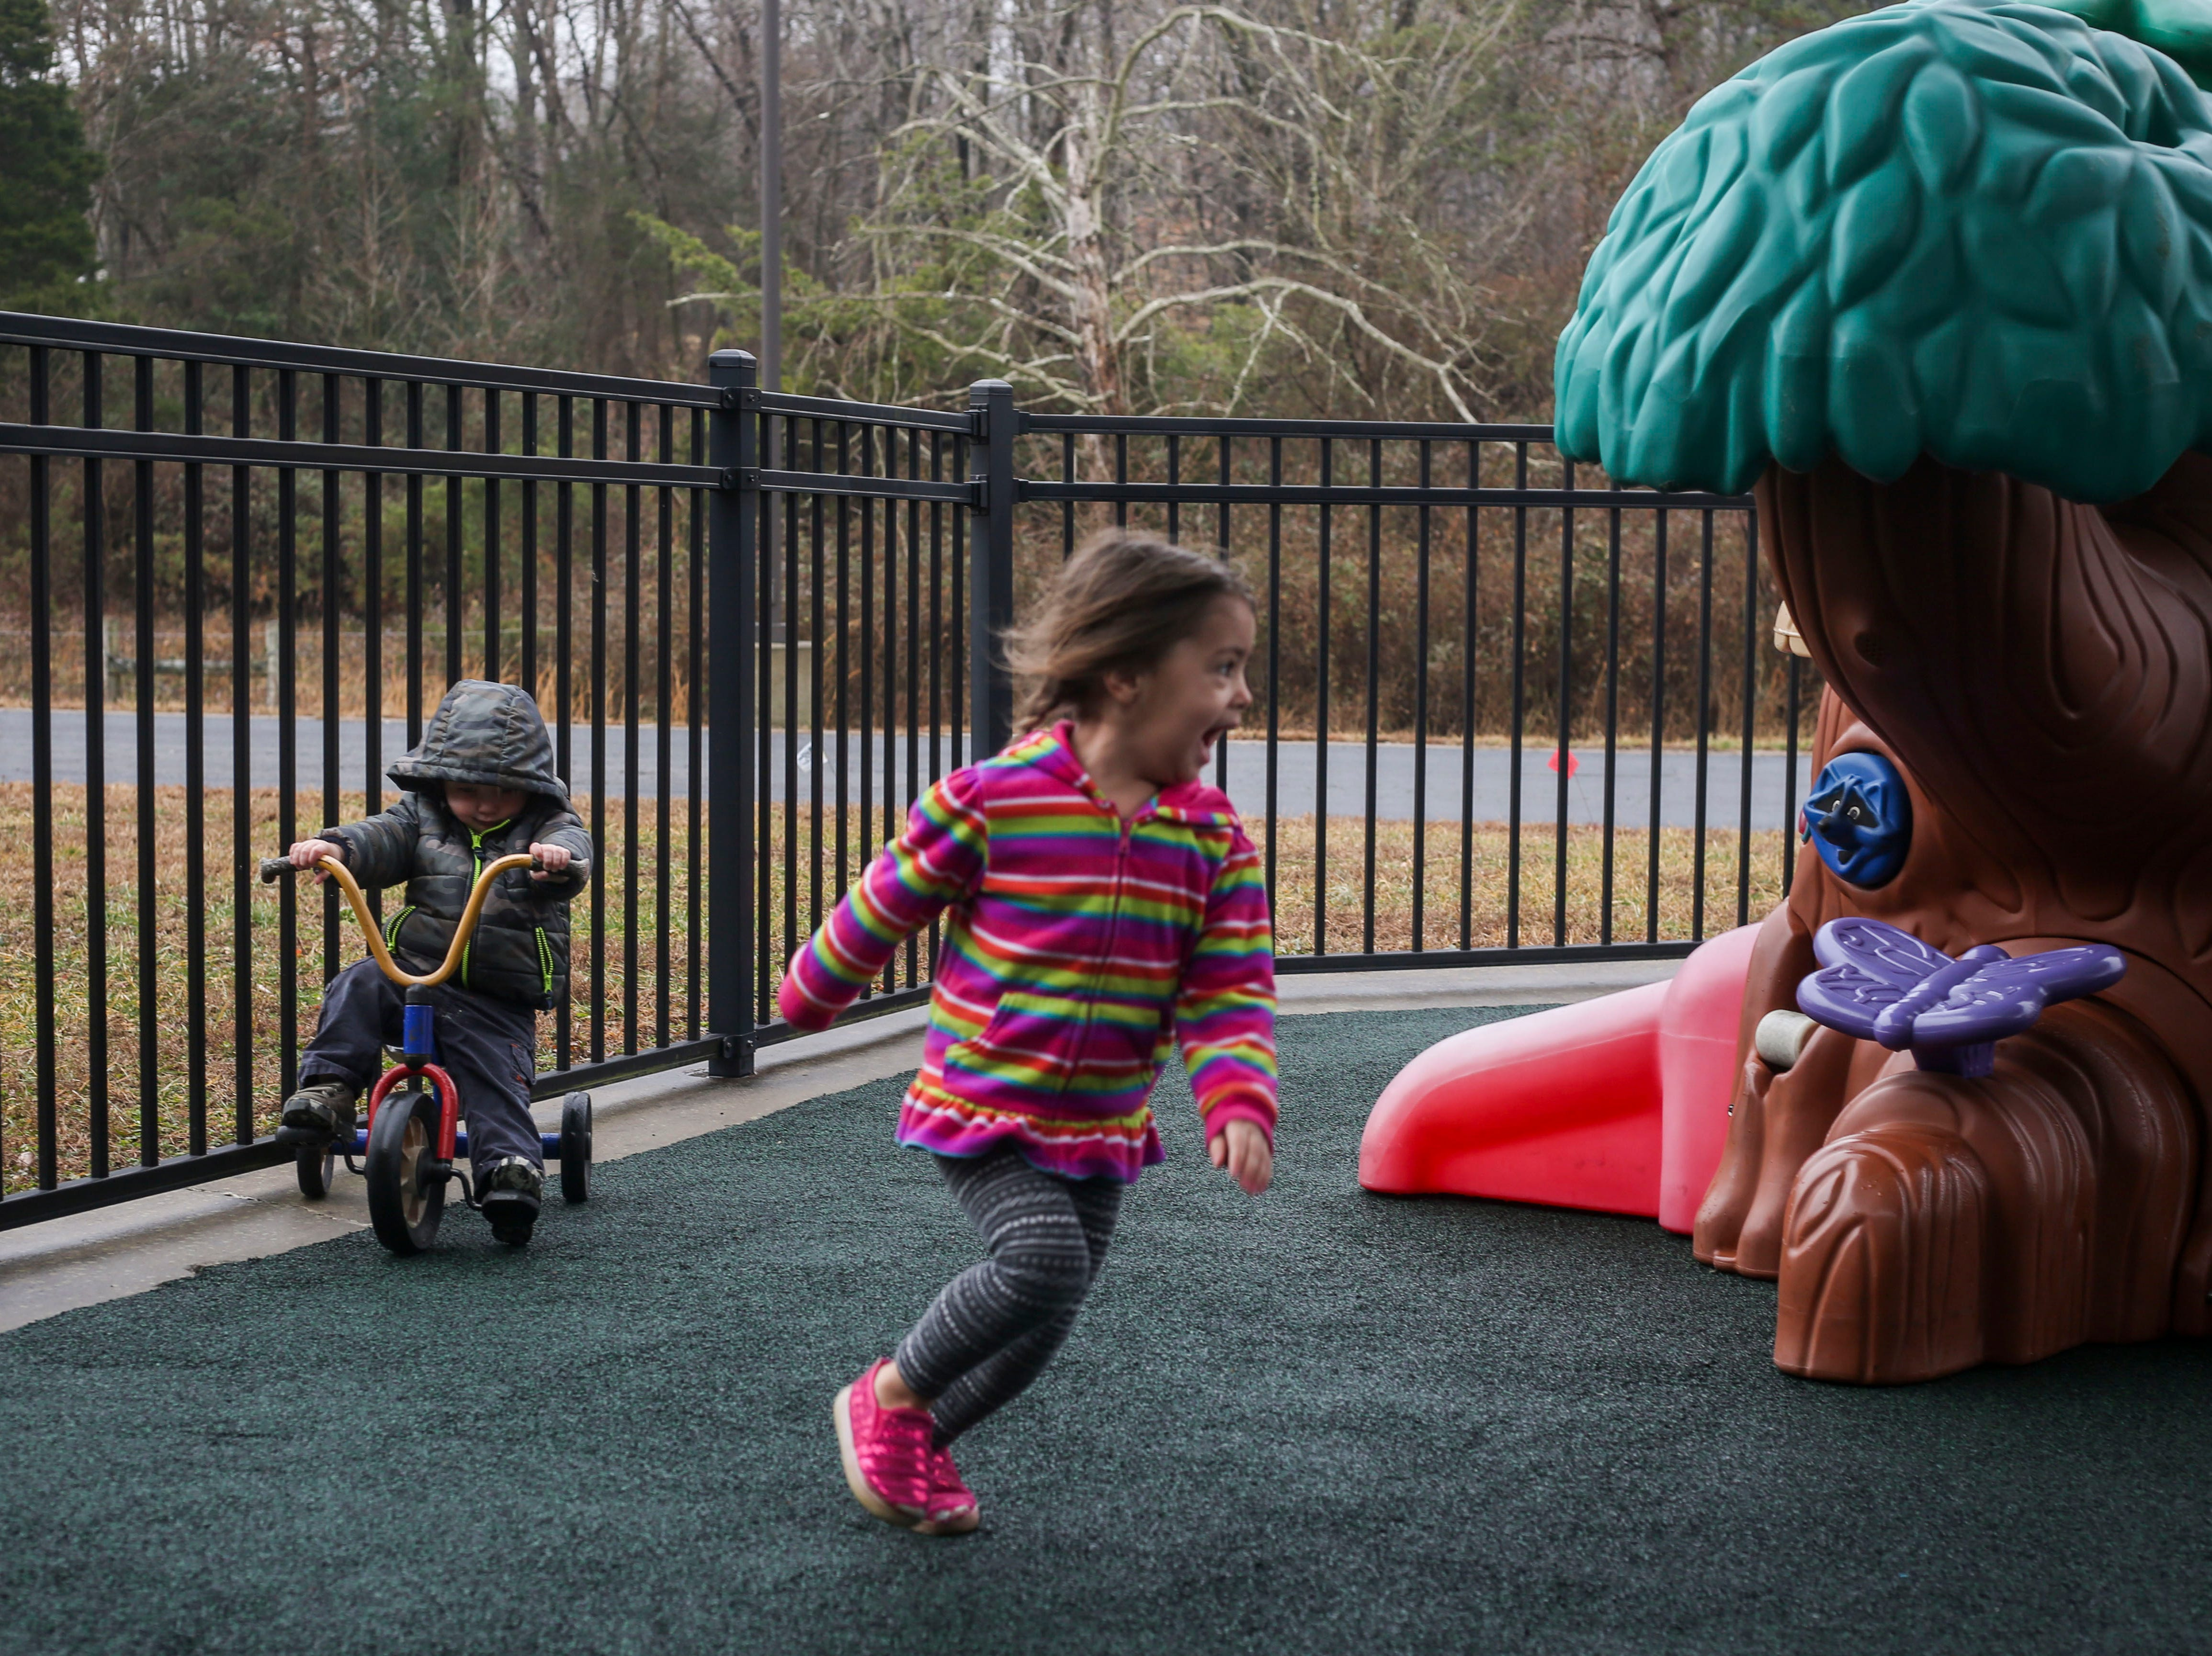 Claire Dupree, right, plays outdoors during the Early Head Start program at Brooks Elementary School in Brooks, Kentucky, on Feb. 5, 2019.